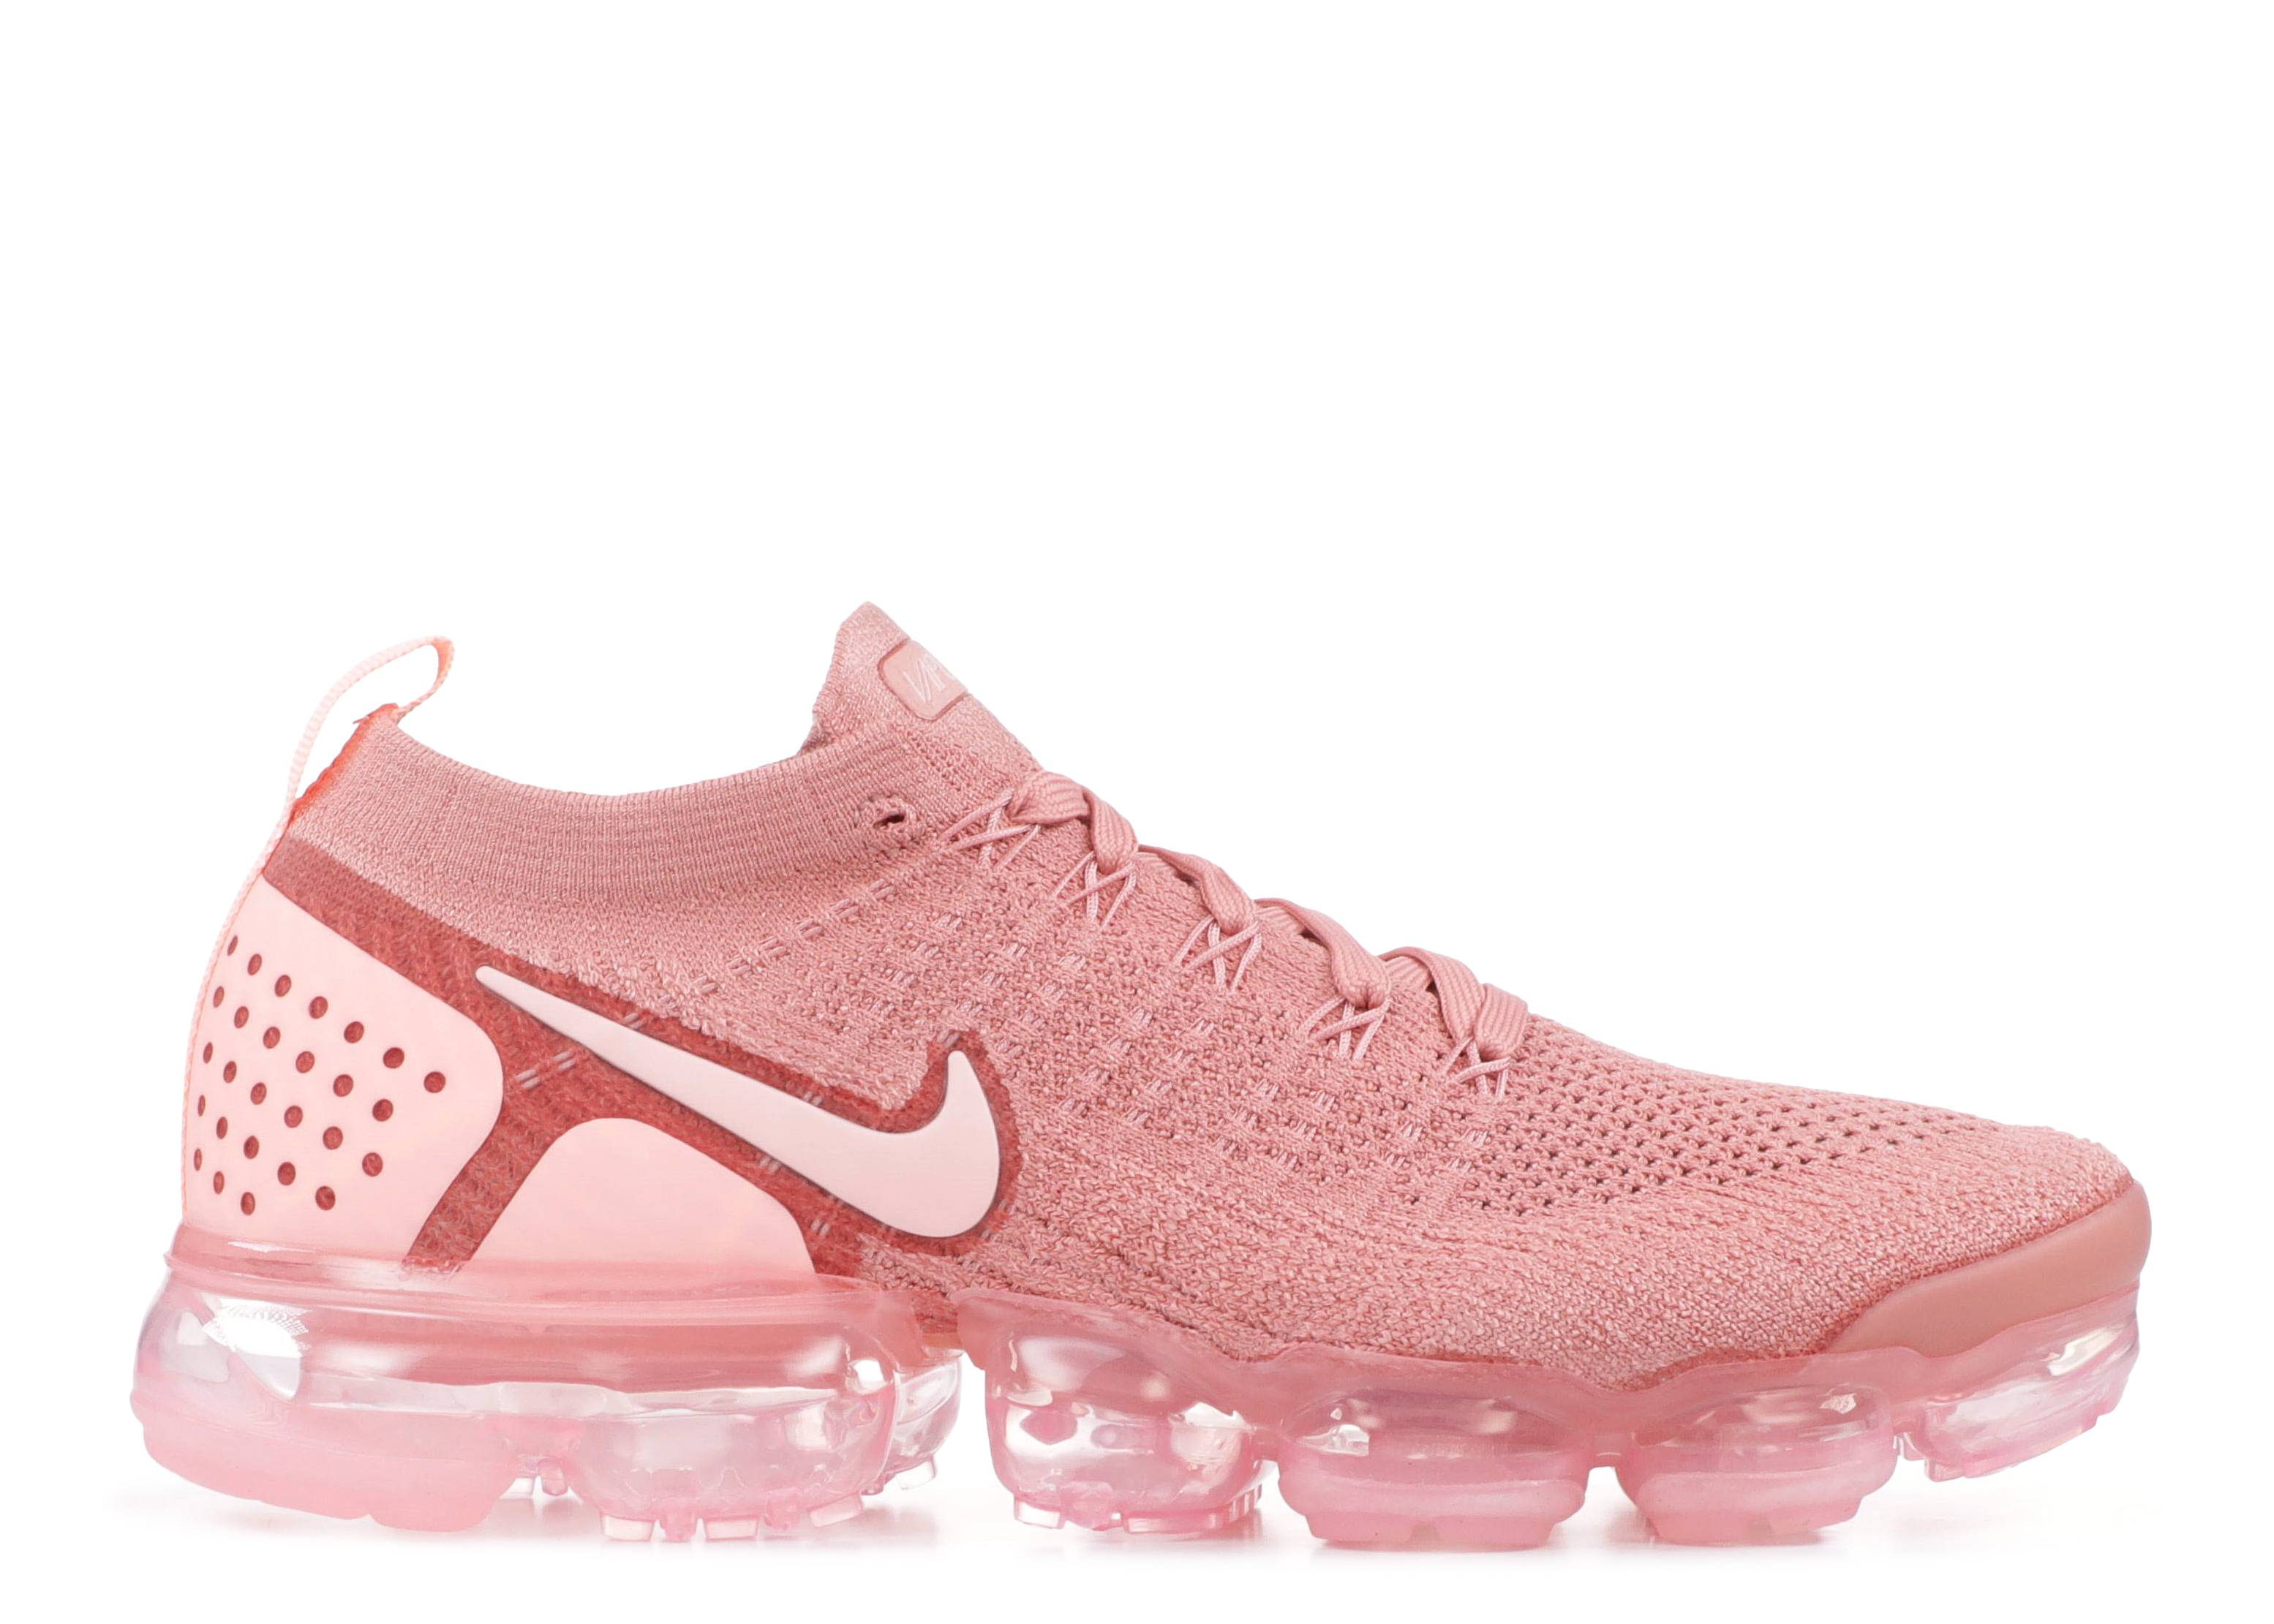 reputable site 4f642 9fee9 w nike air vapormax flyknit 2